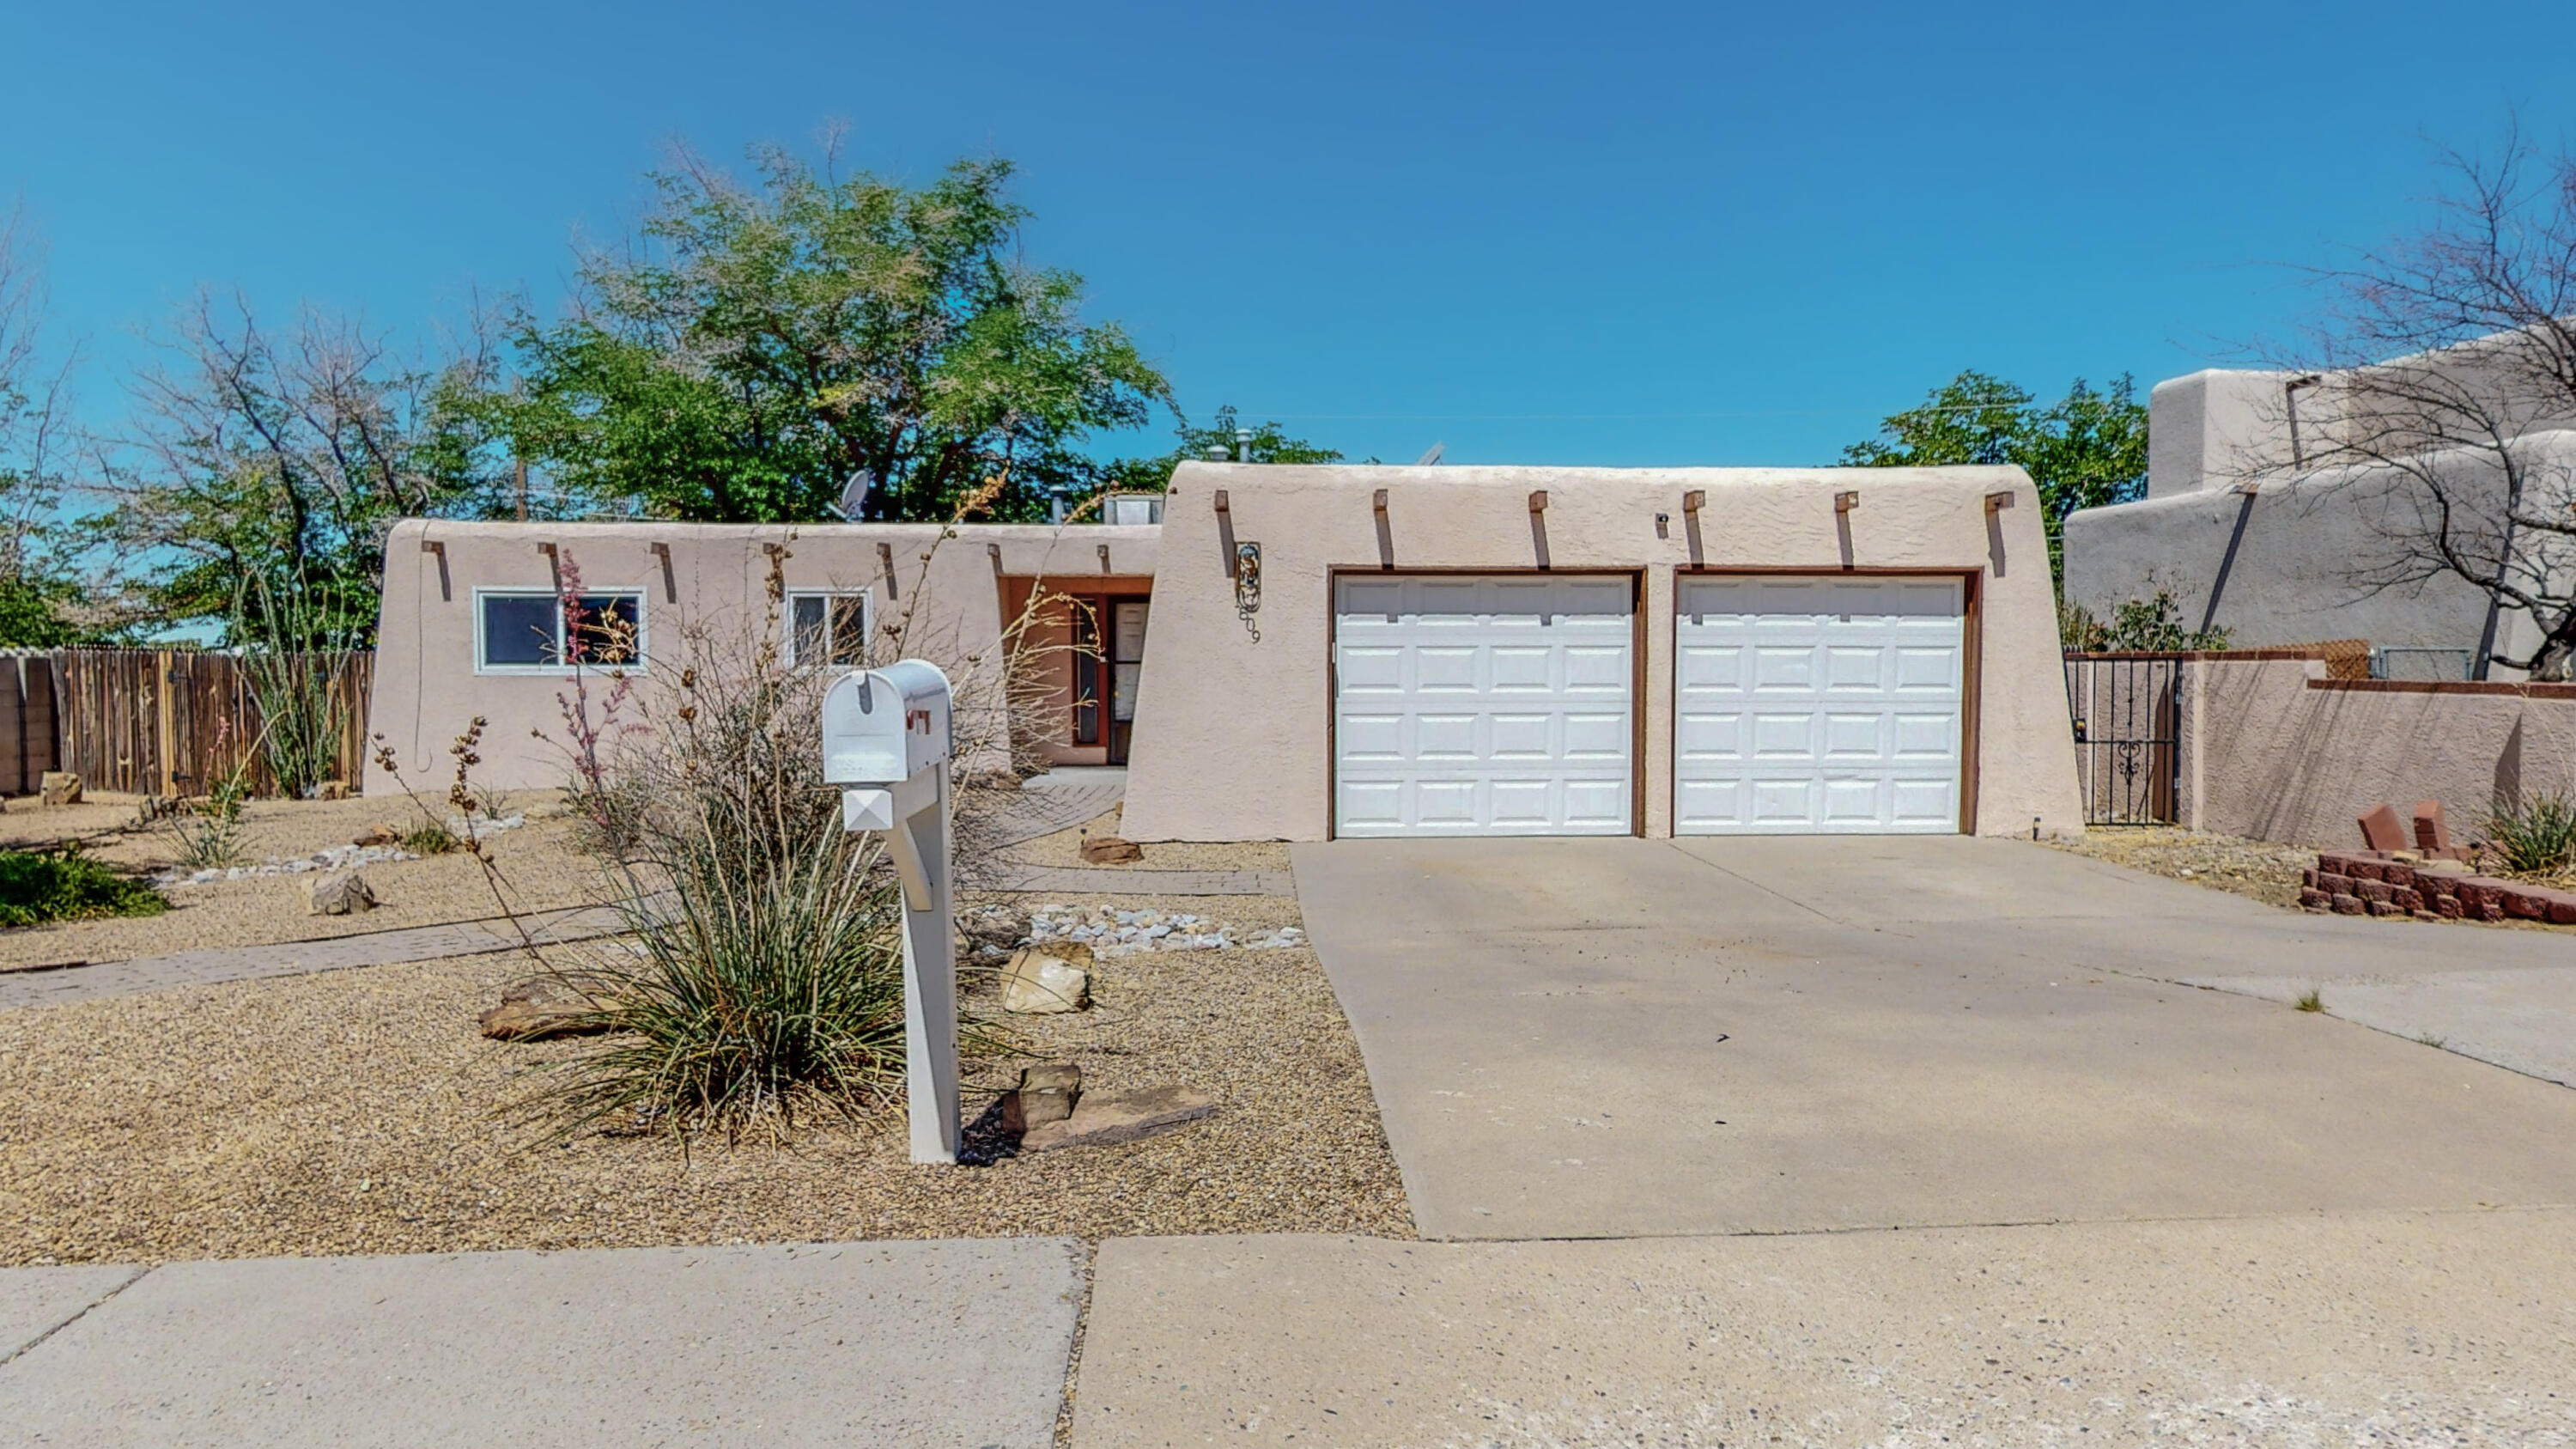 This 3 bed 2 bath home has so much to offer. The kitchen has granite counter tops, and stainless steel appliances. This home also has 2 living areas making it very open and welcoming.